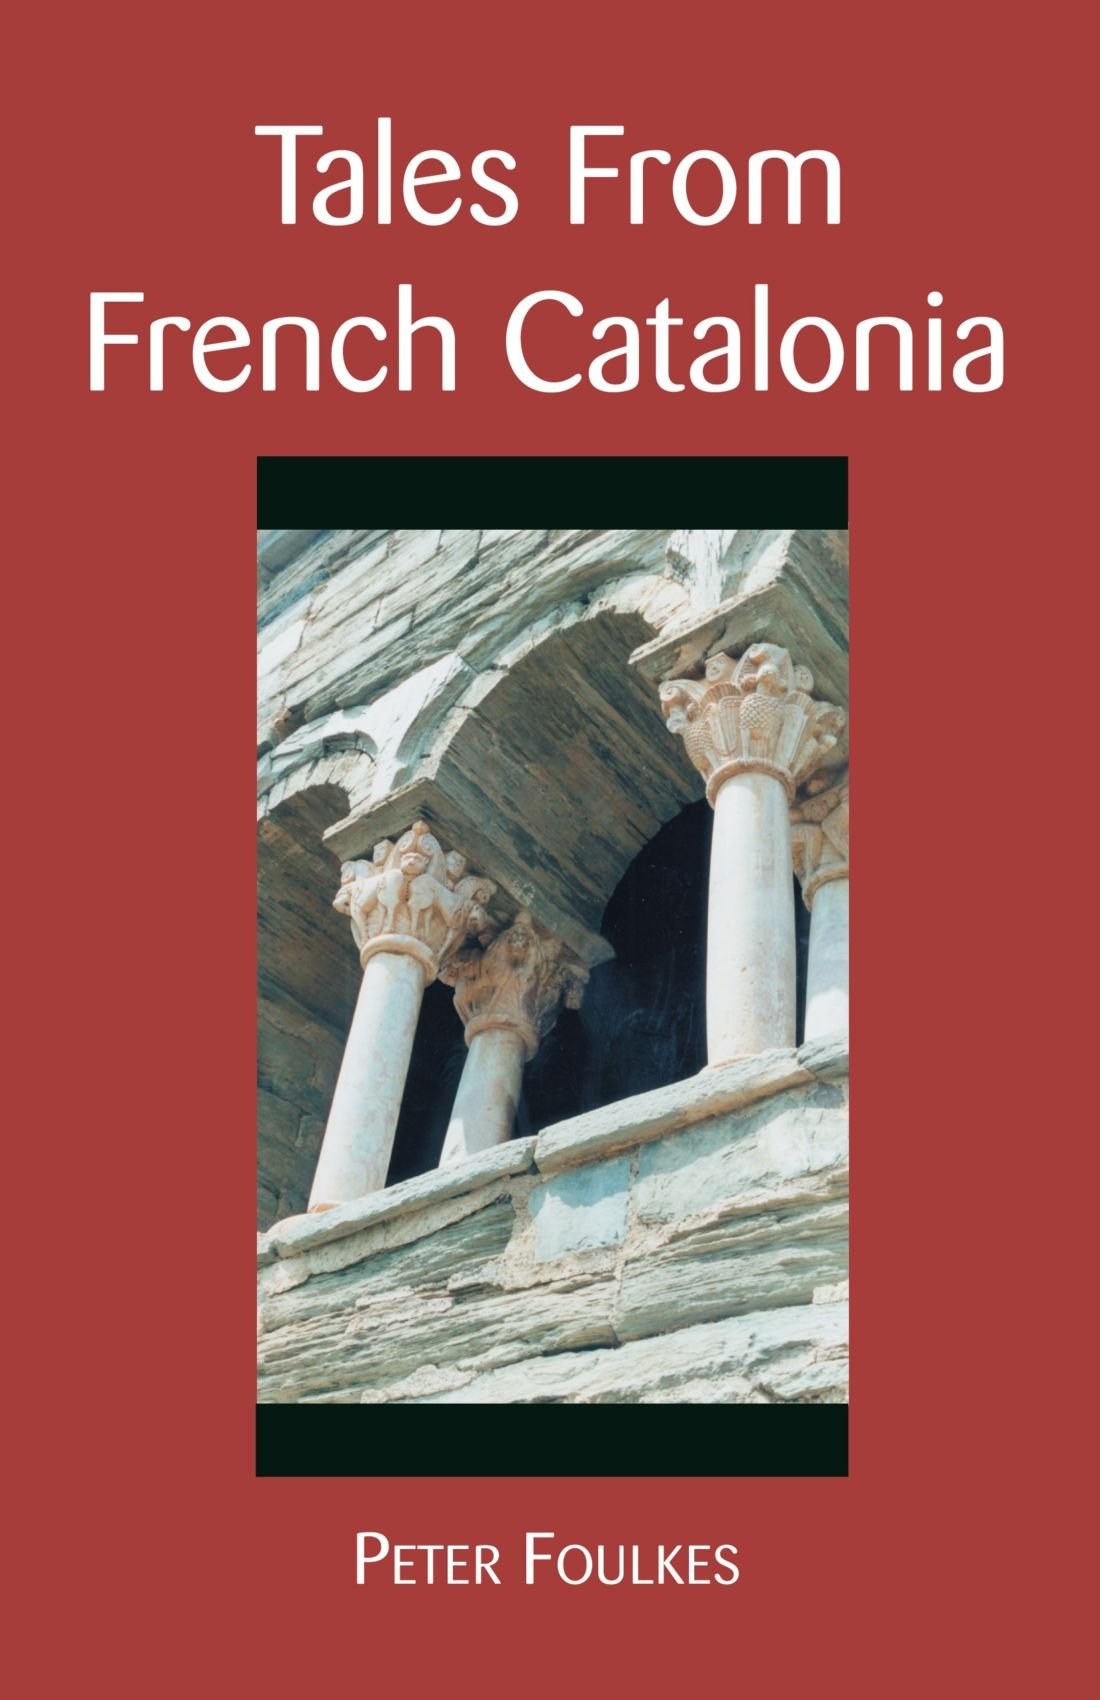 Tales From French Catalonia